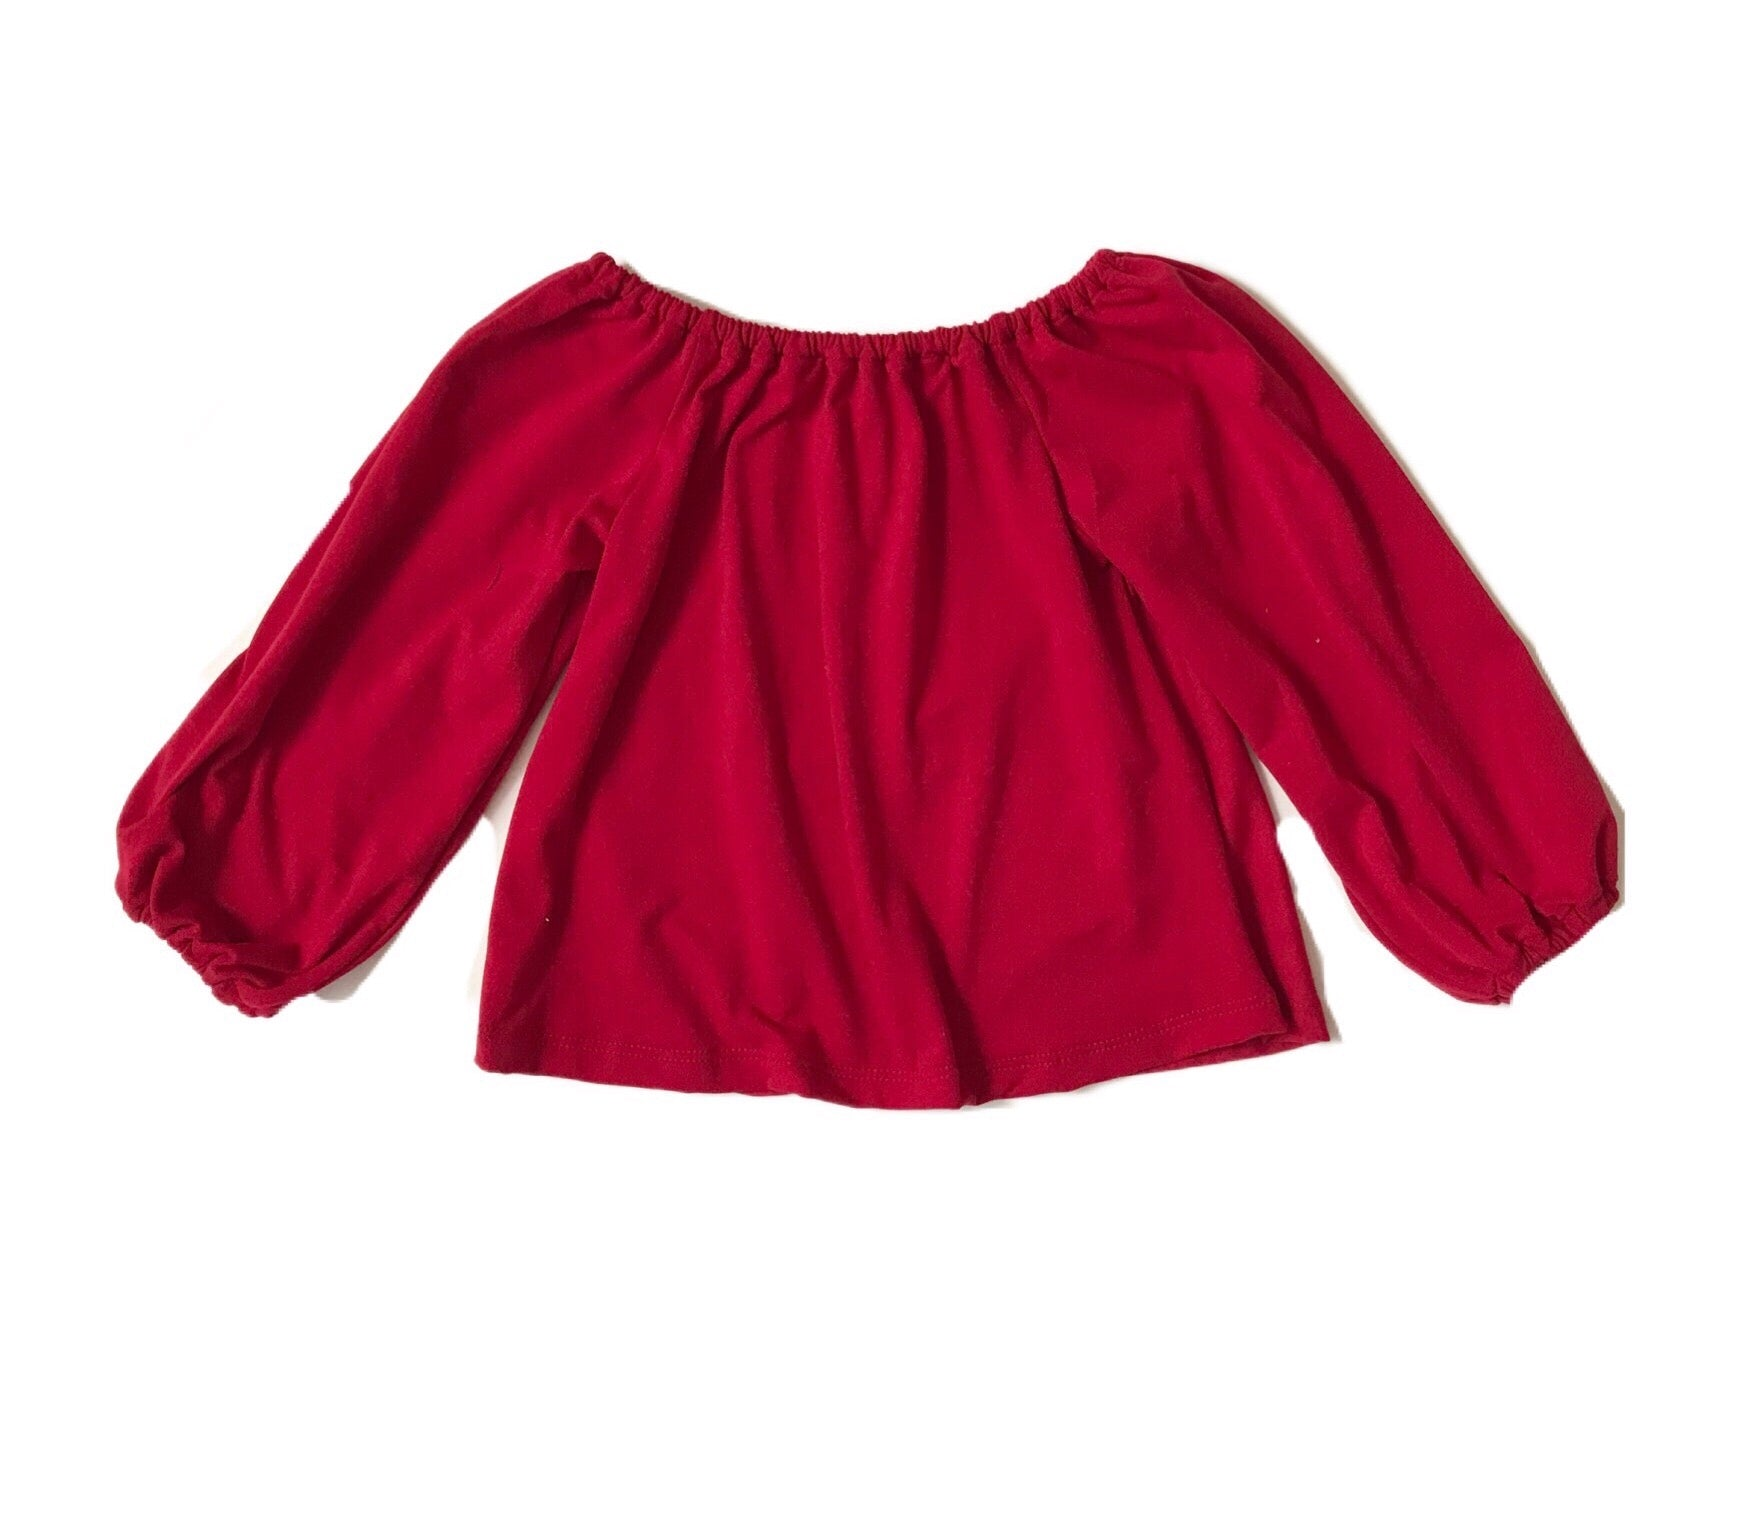 MADE TO ORDER- Smock Top in Red with bow